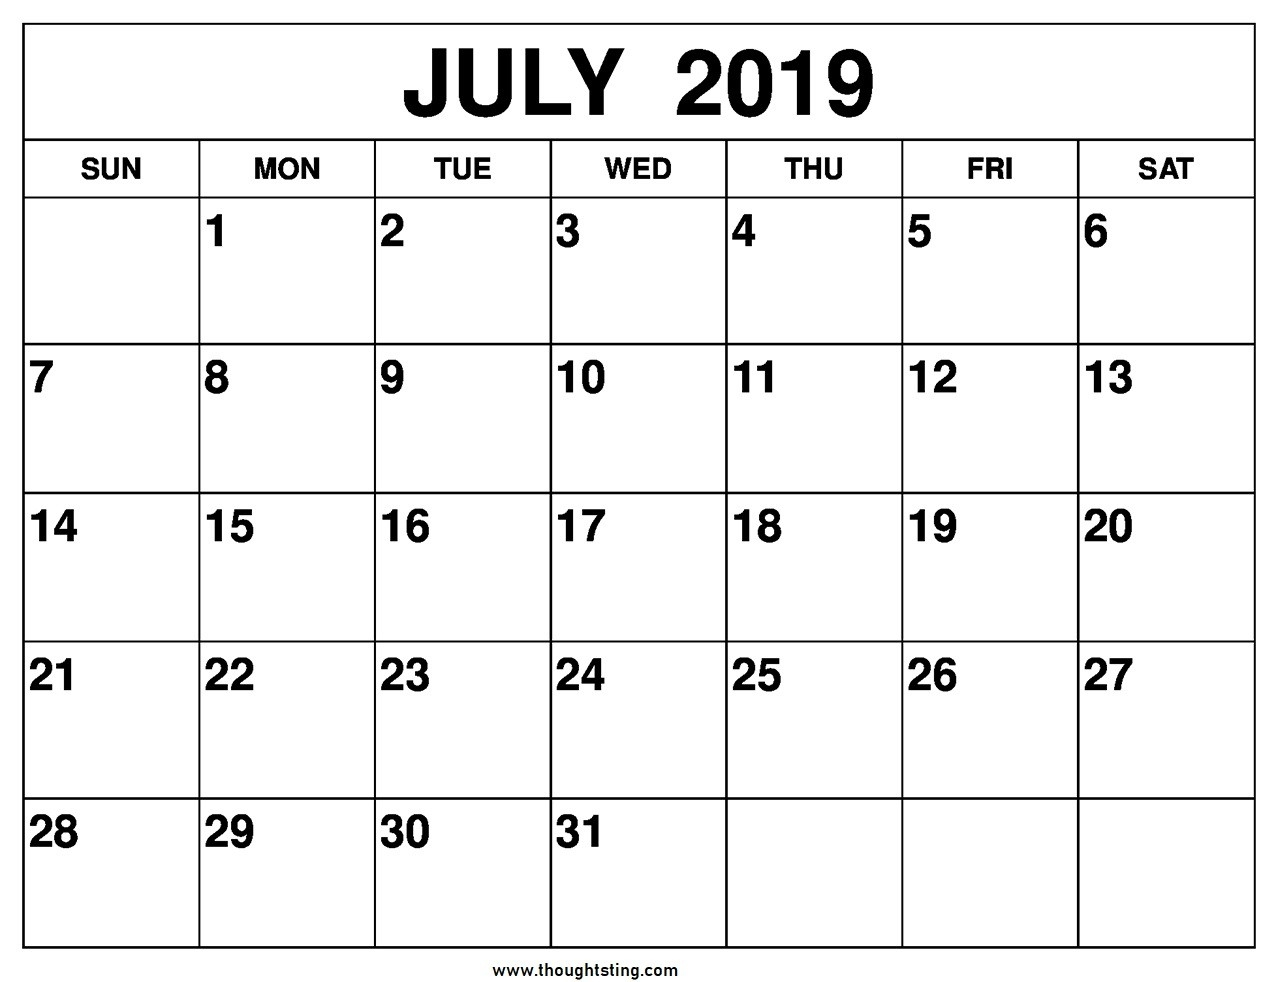 July 2019 Calendar Printable One Page Template - Free  Full Page Printable Calendar